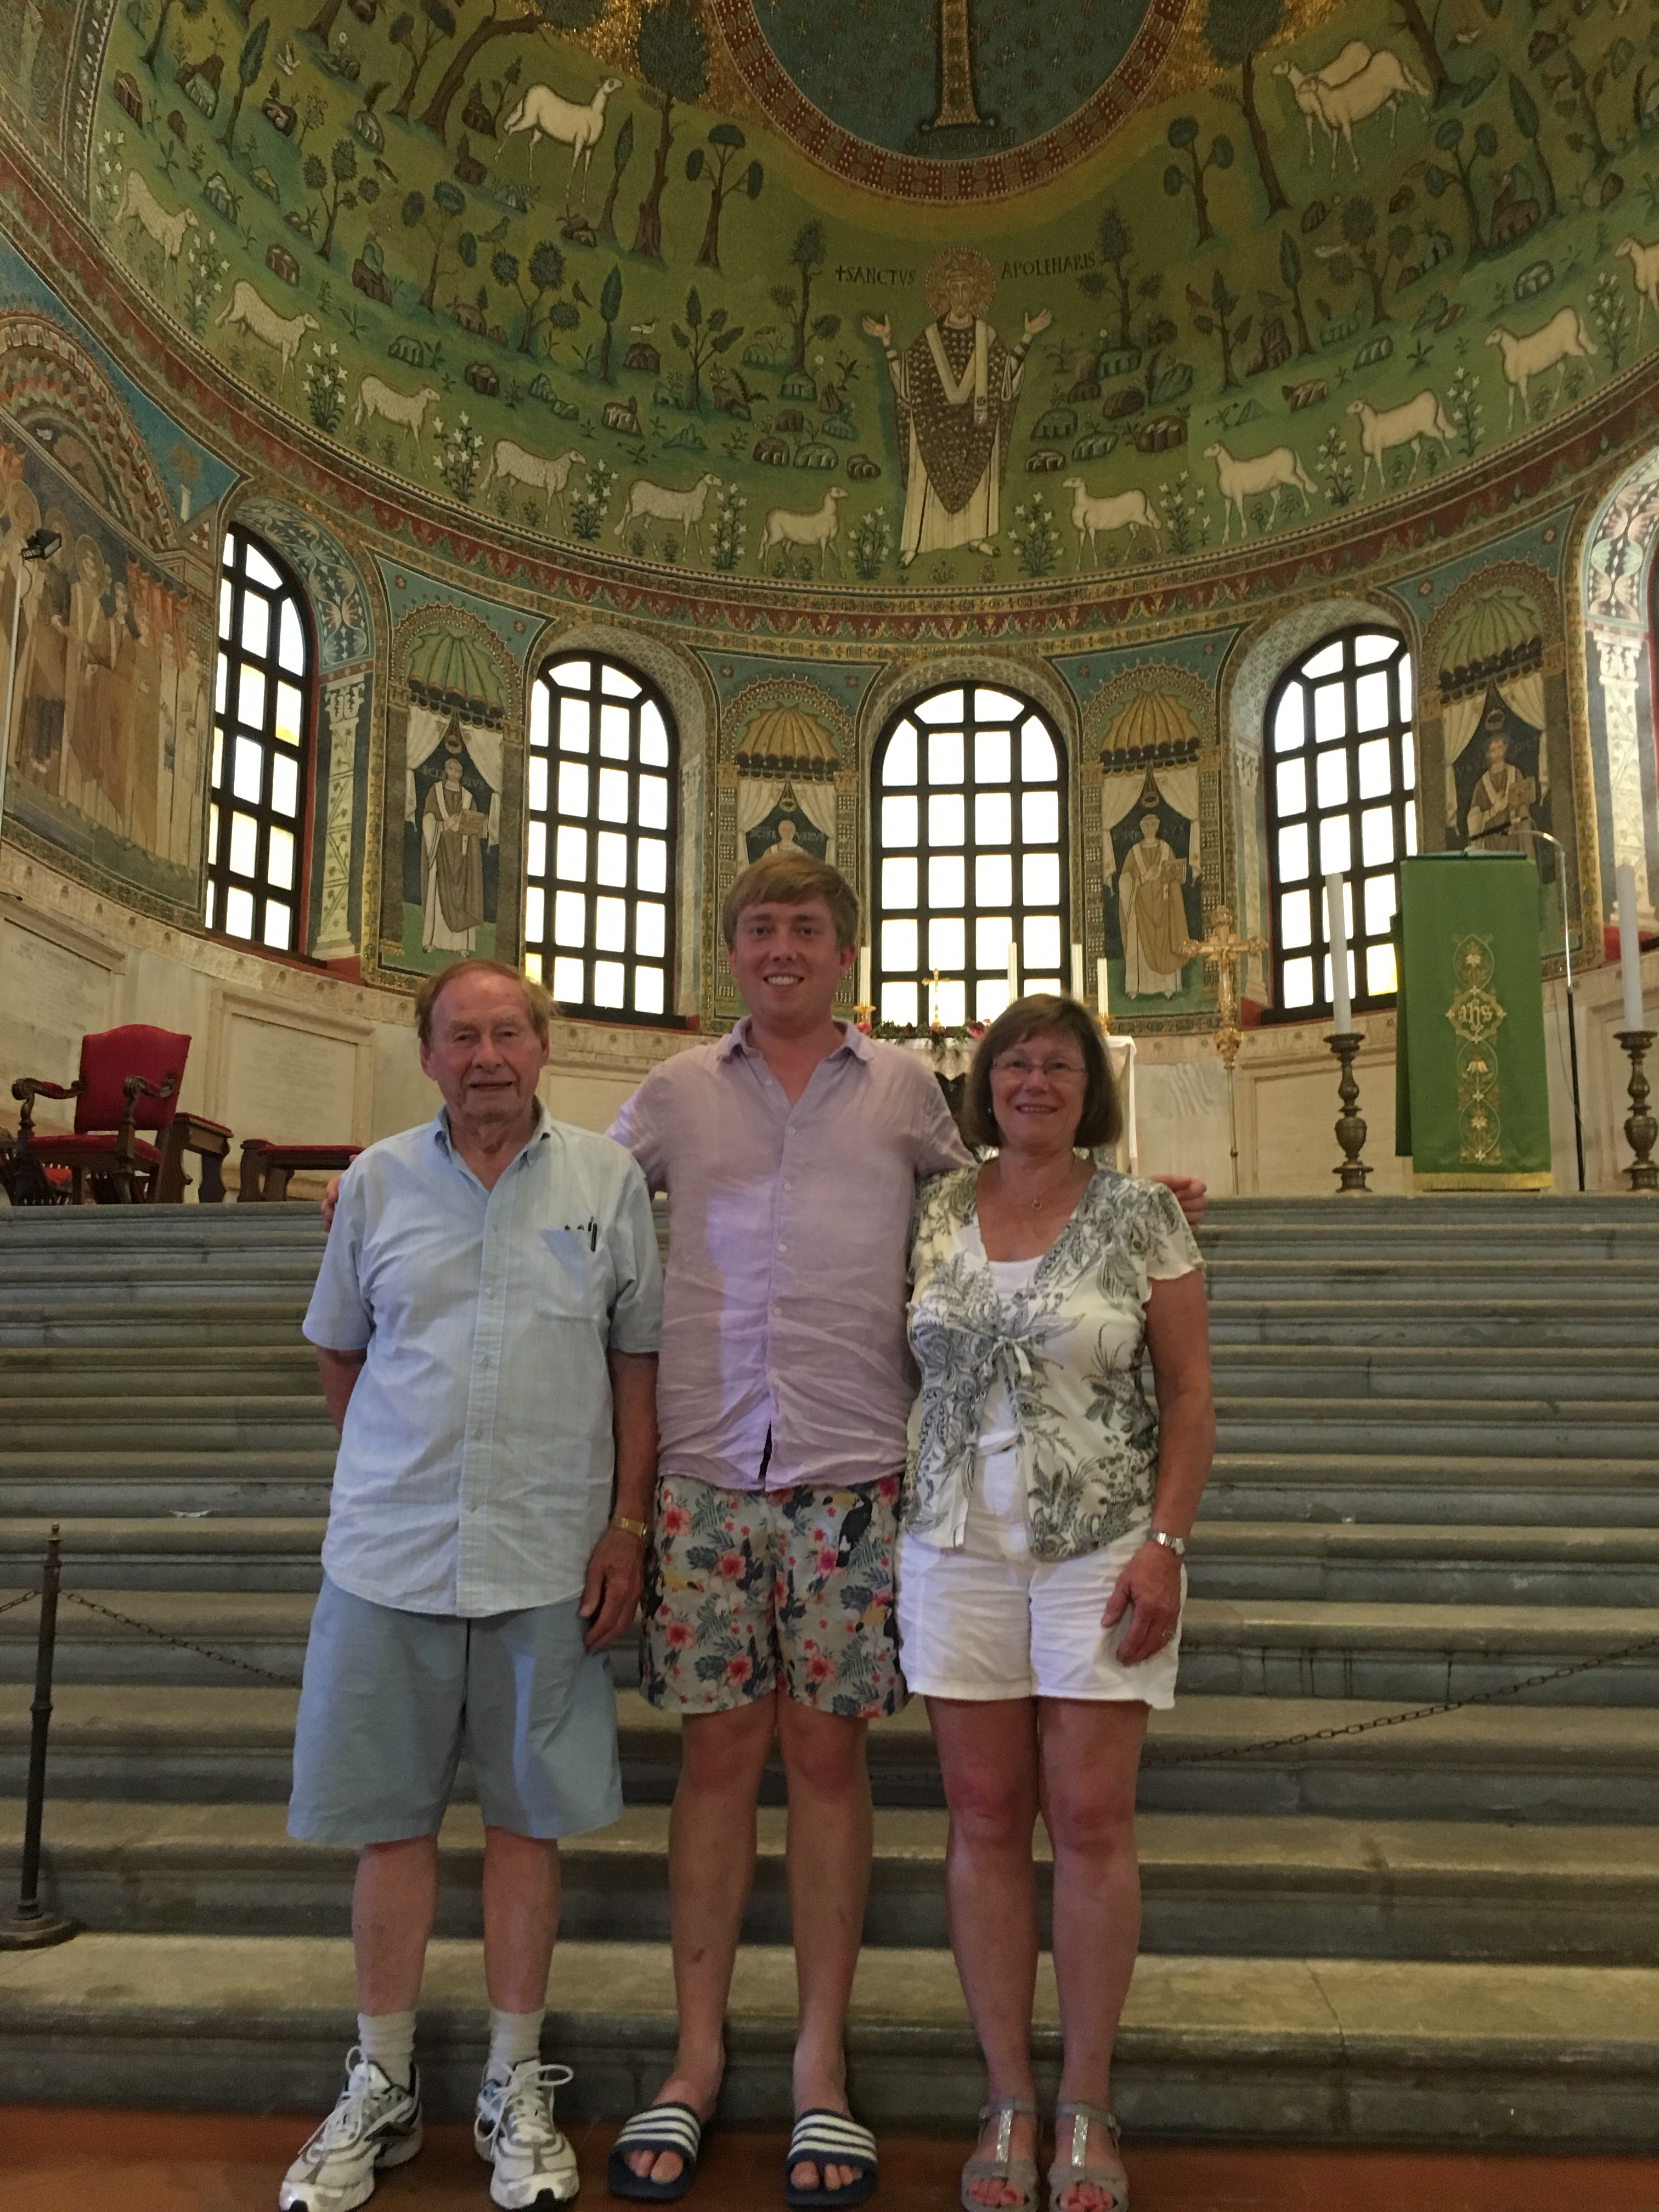 Visitors gaze in awe at the mosaics that decorate the apse, Sant' Apollinare in Classe - www.educated-traveller.com